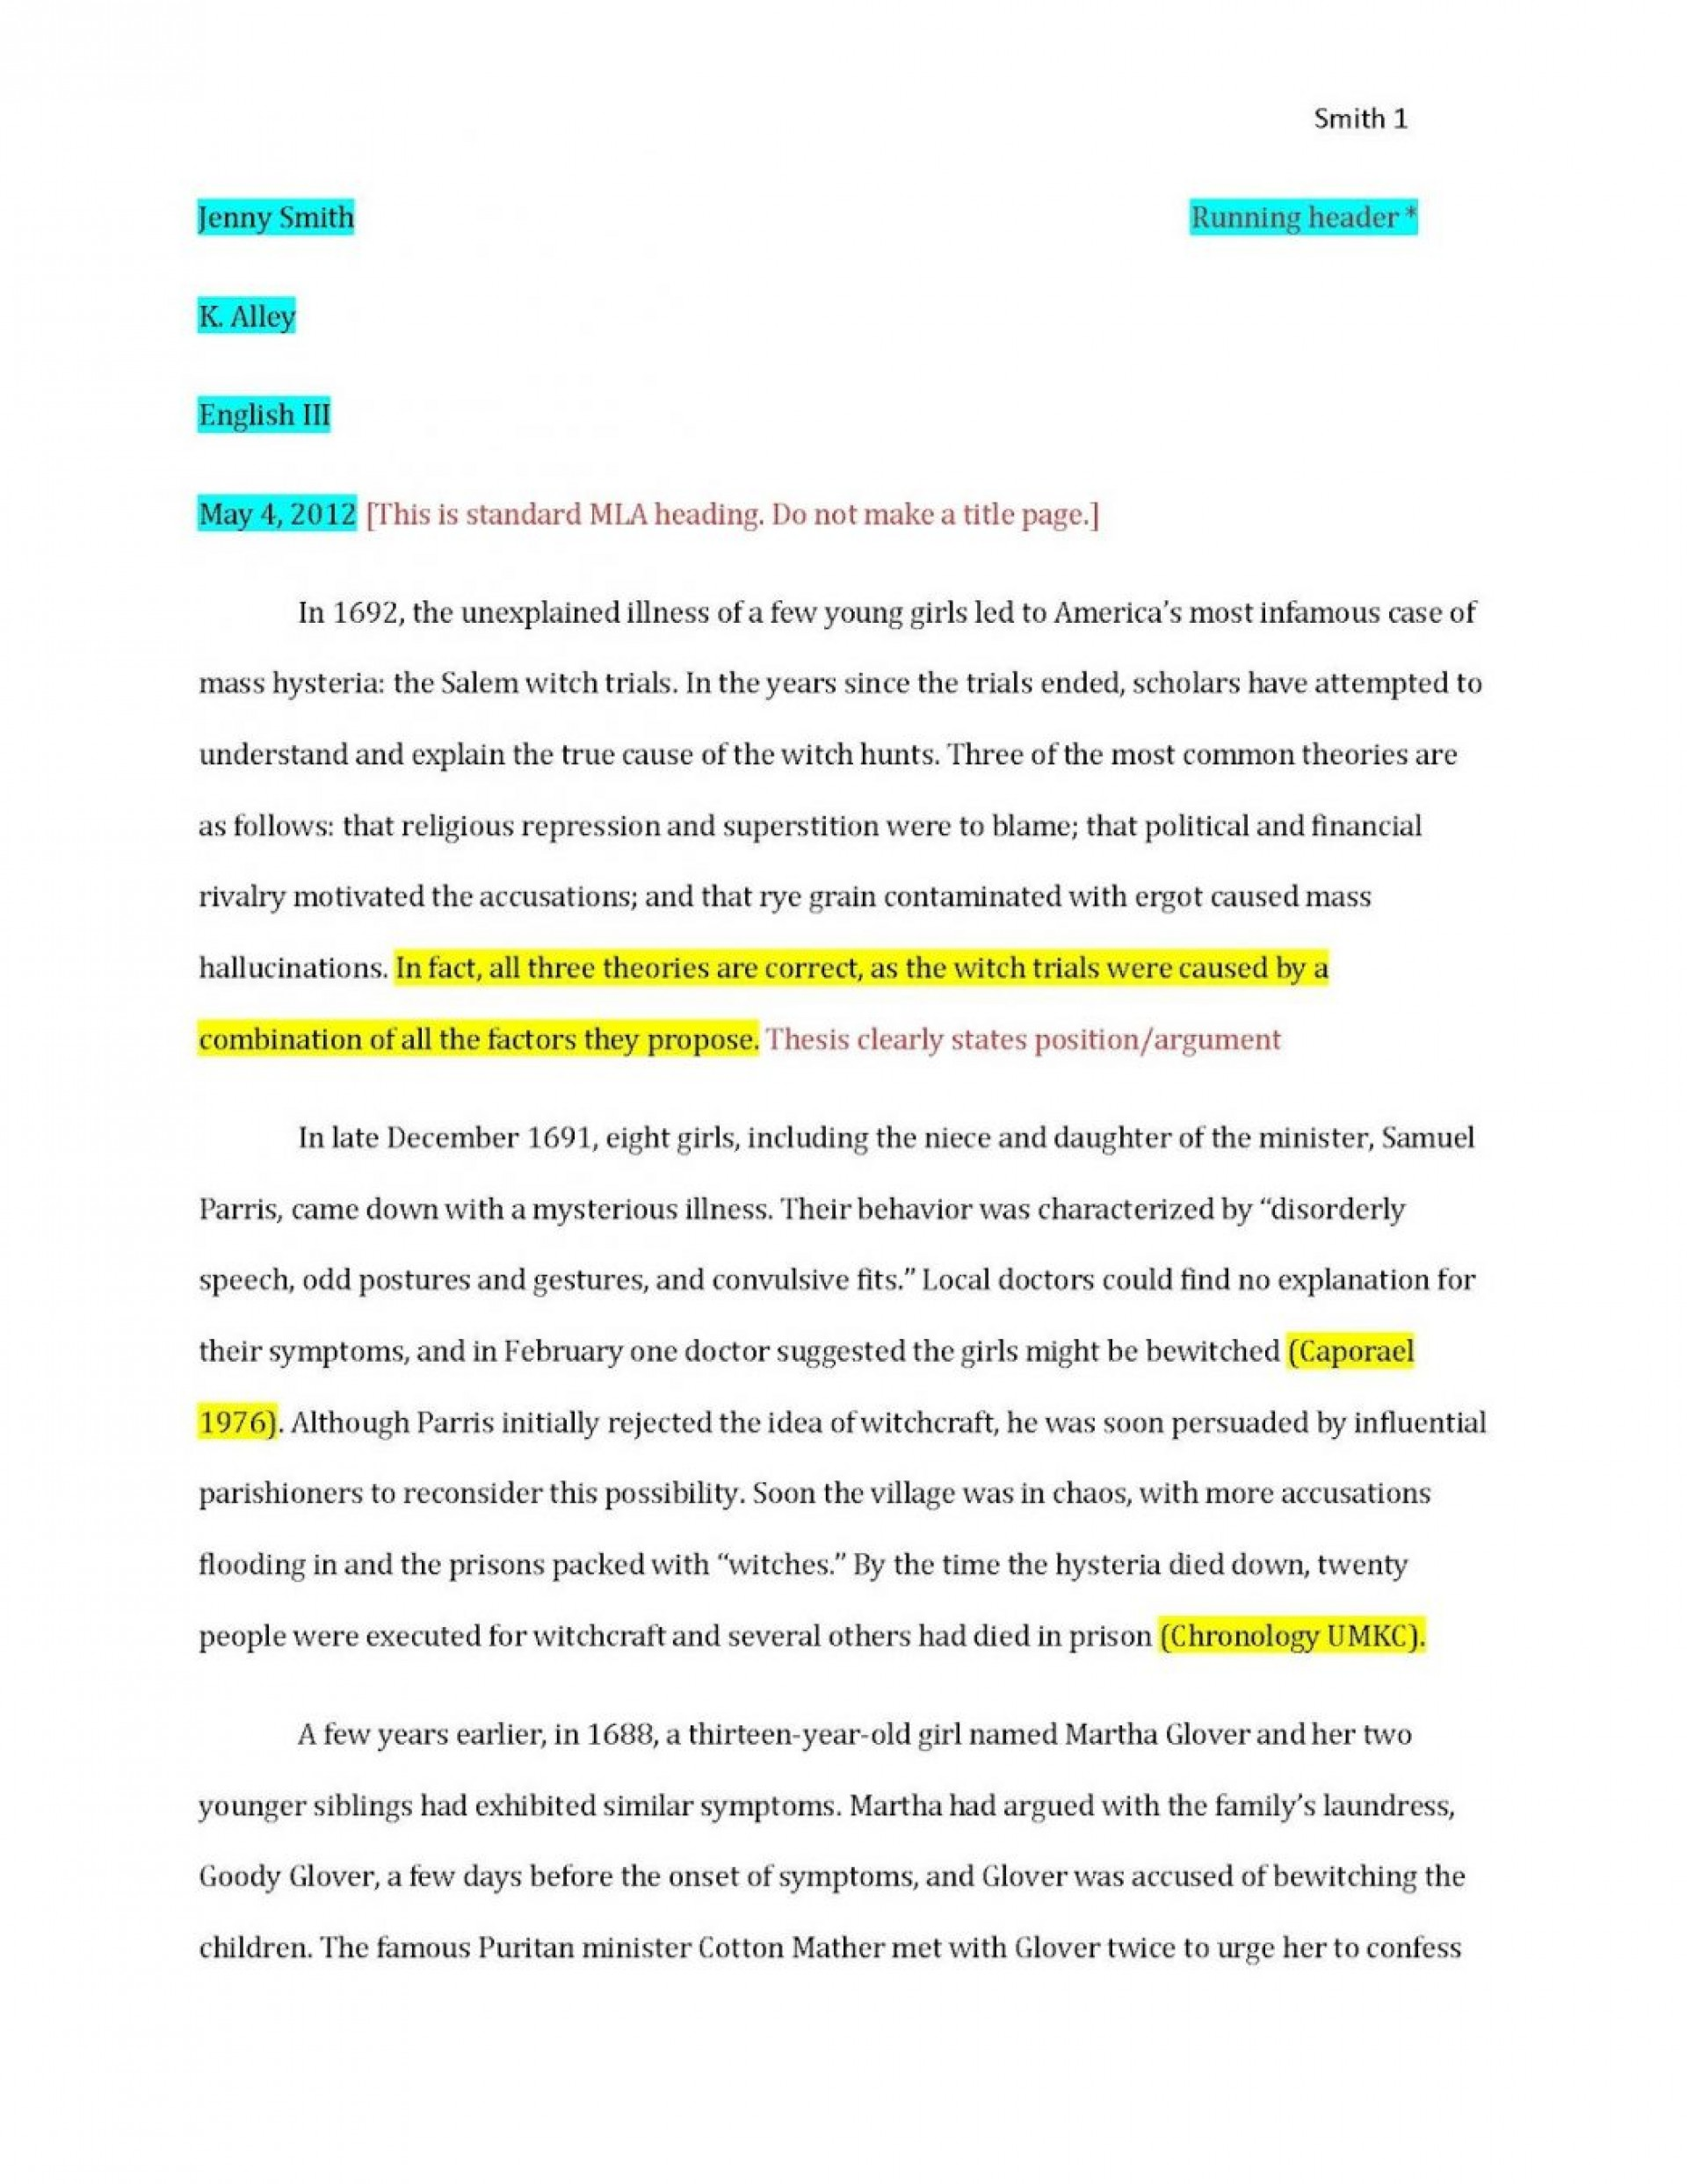 002 Mla Format Essay Generator Author Date References System Ready Set Automaticpaper P 1048x1357 Wondrous Funny Free Software Bot 1920